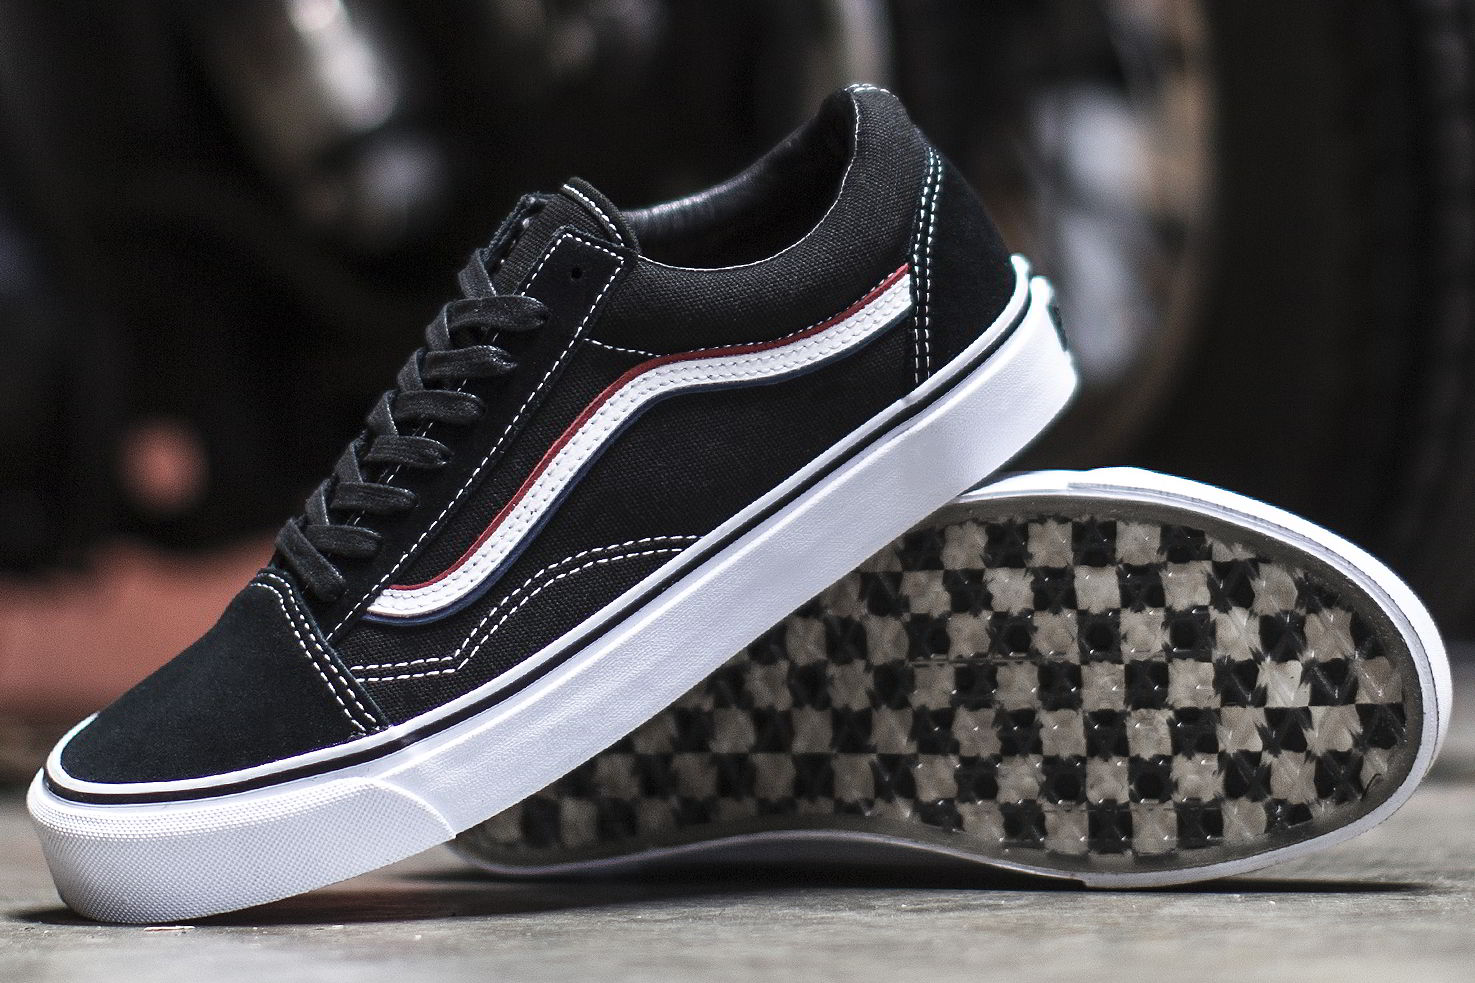 blends vans vault born free 8 collab 02 - Blends e Vans Vault lançam Old Skool inspirado por motoqueiros